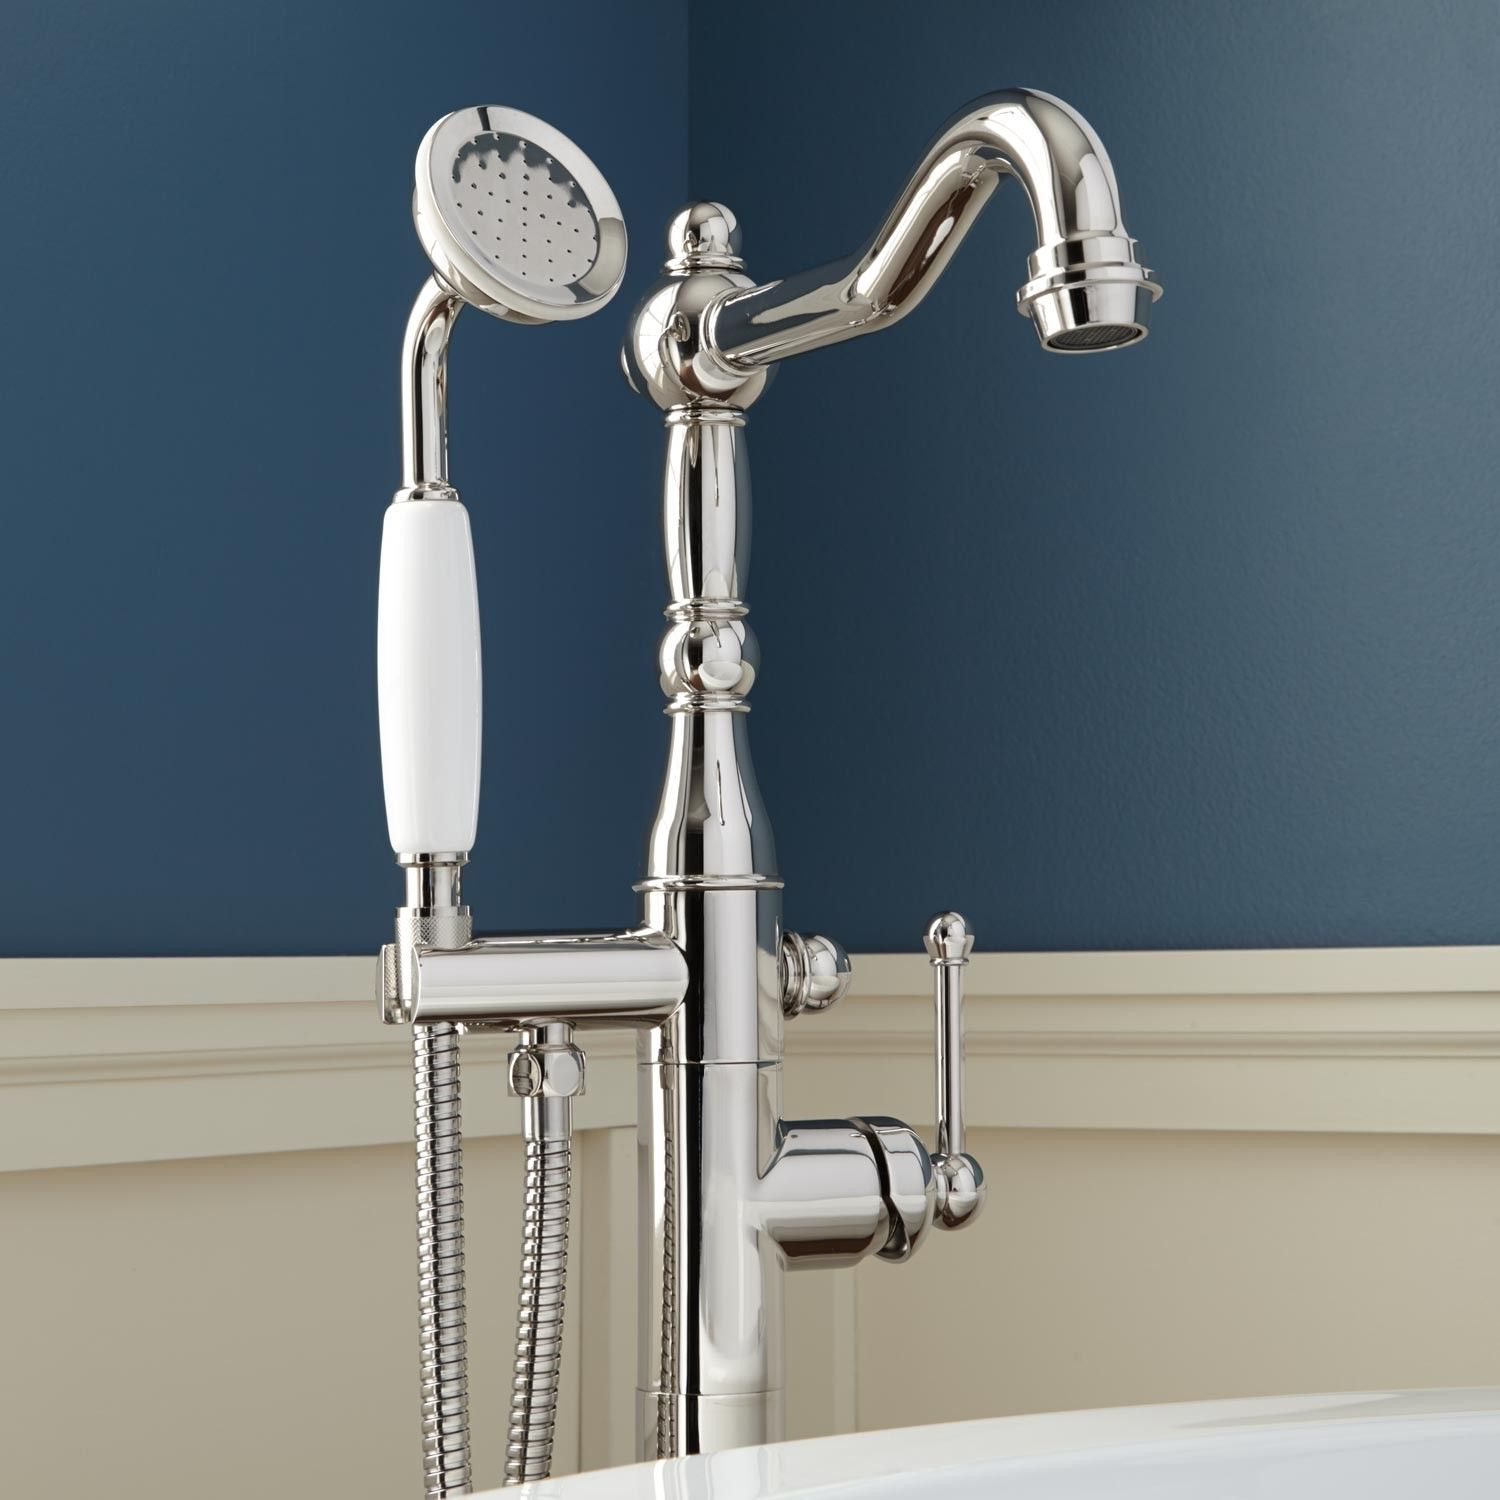 Sidonie Freestanding Tub Faucet with Hand Shower | Freestanding tub ...